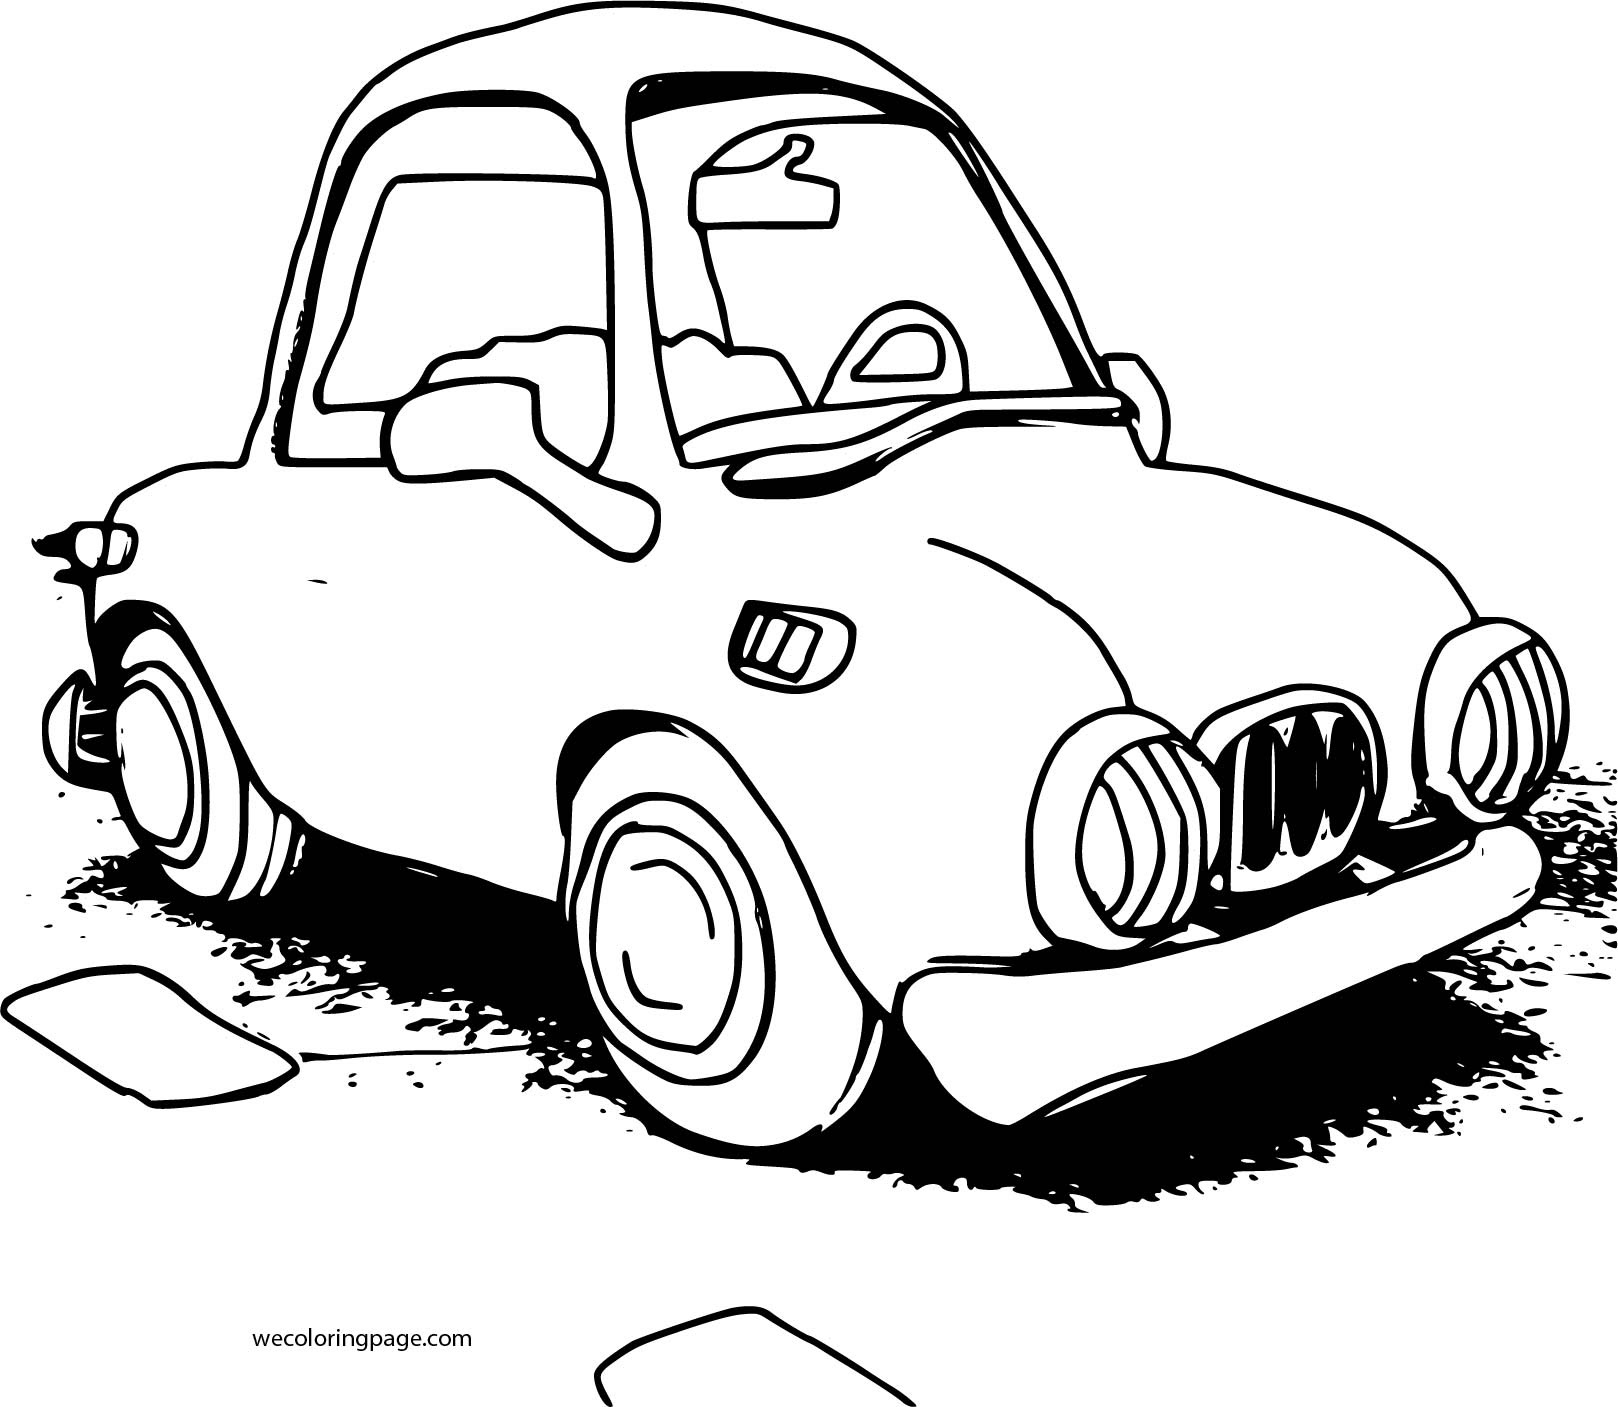 Cartoon Car Sedan Coloring Page | Wecoloringpage.com